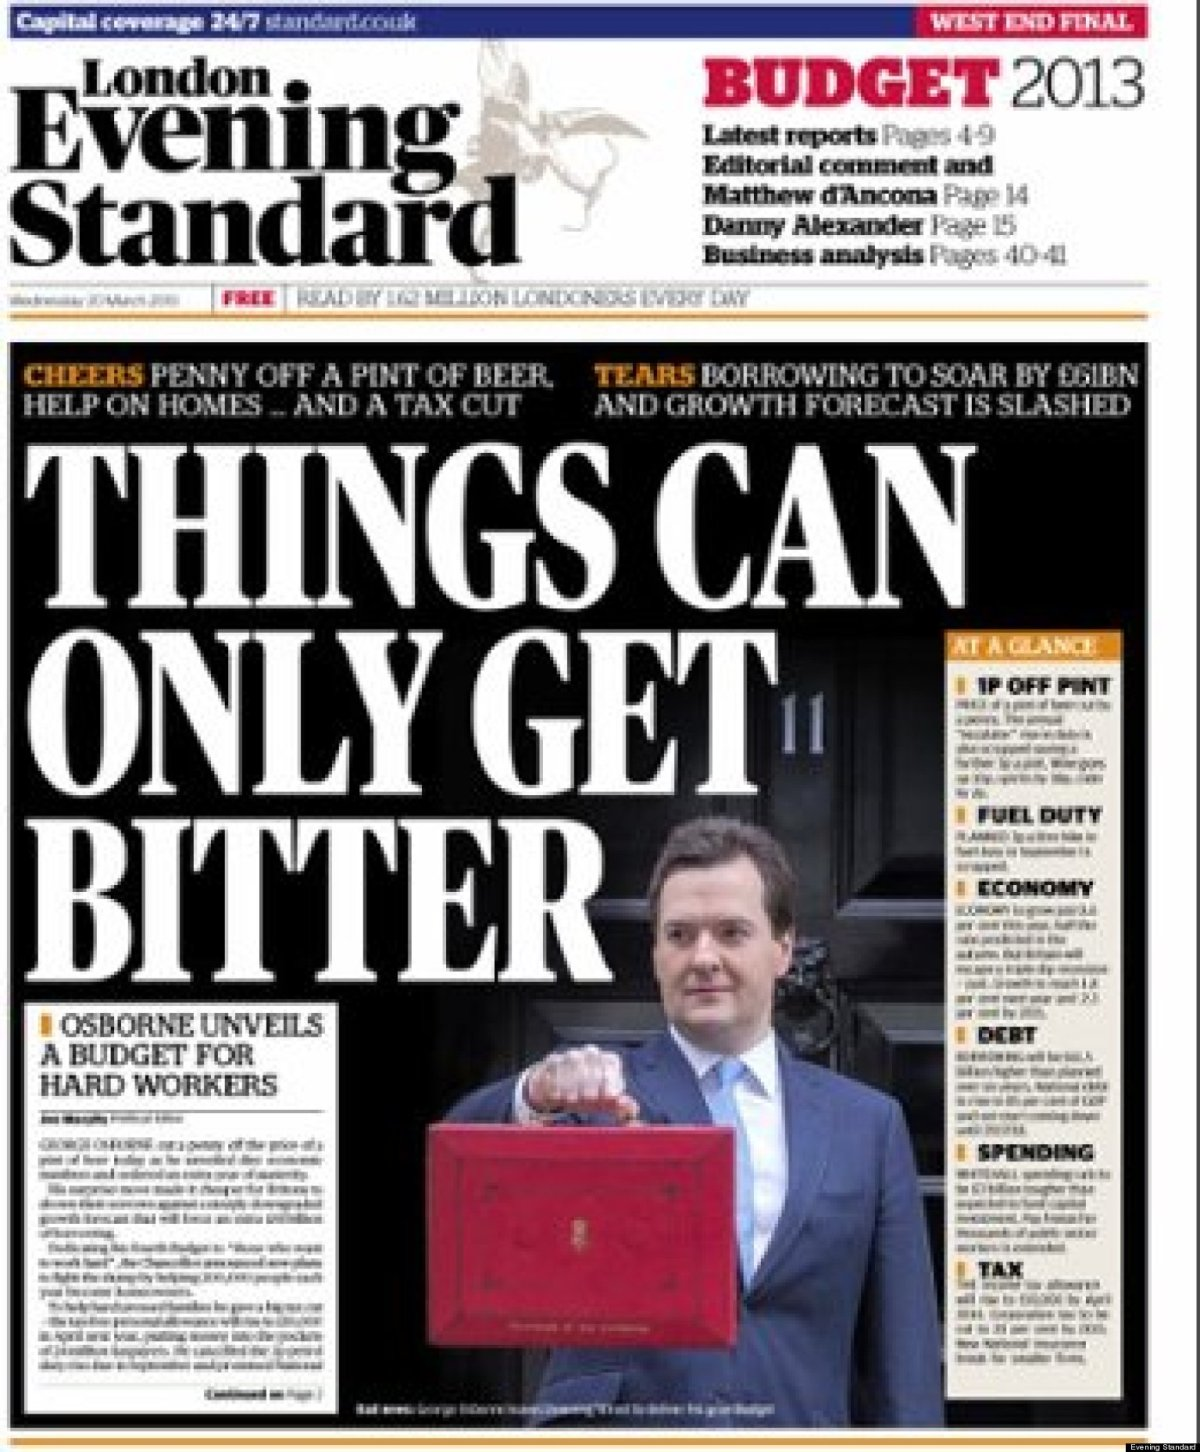 George Osborne's Evening Standard dilemma in Jeremy Corbyn's city